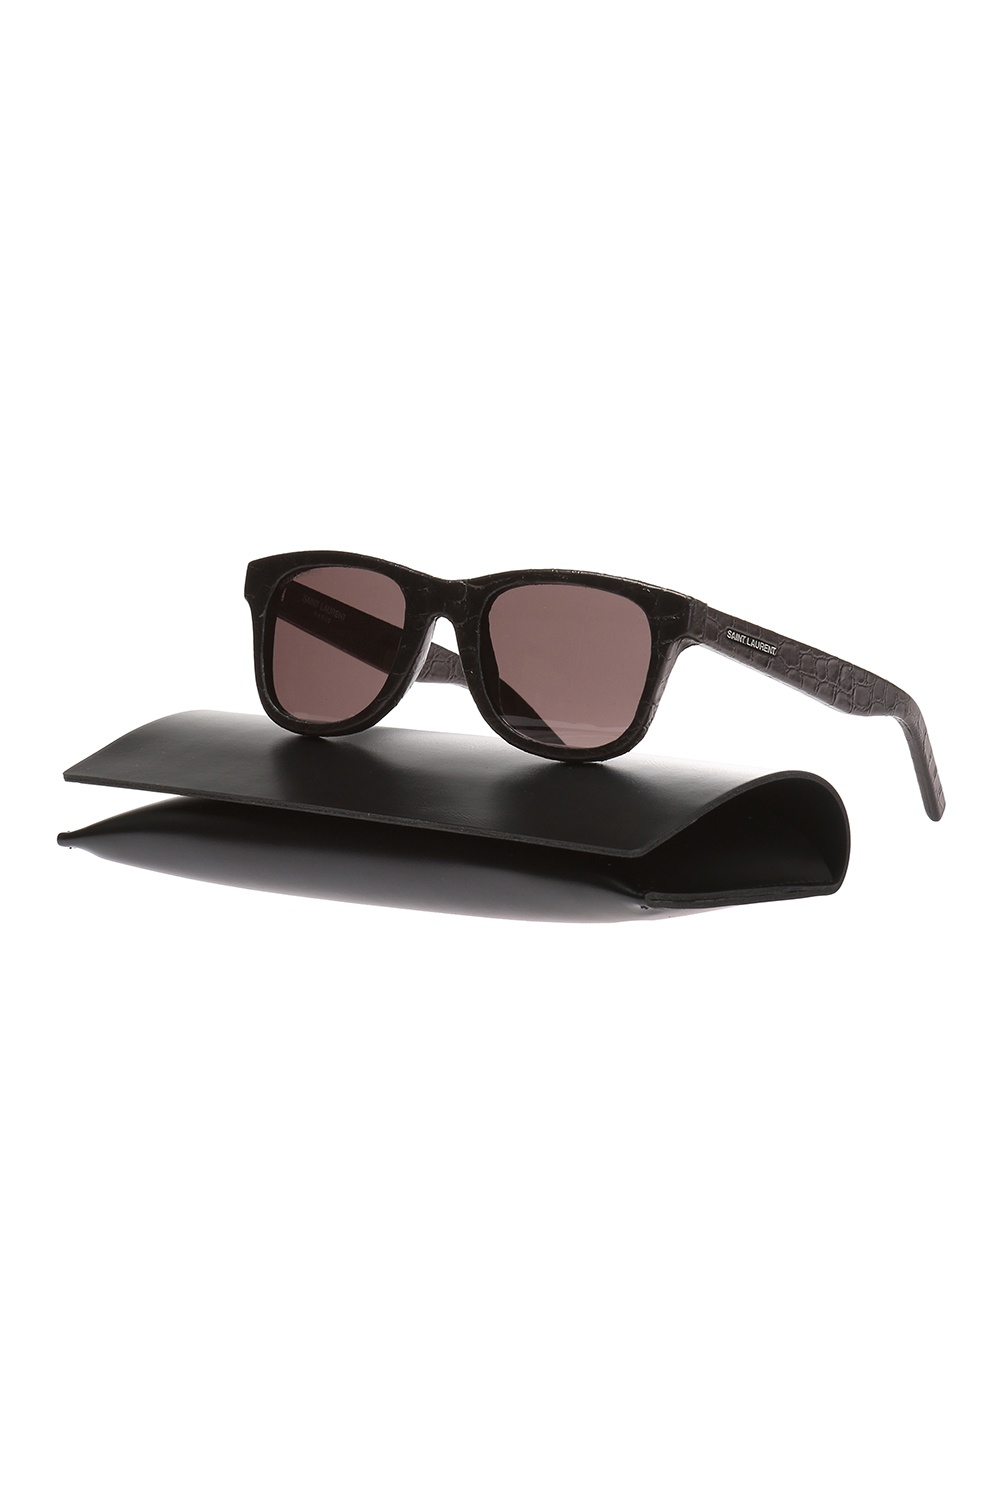 Saint Laurent 'SL 51' sunglasses